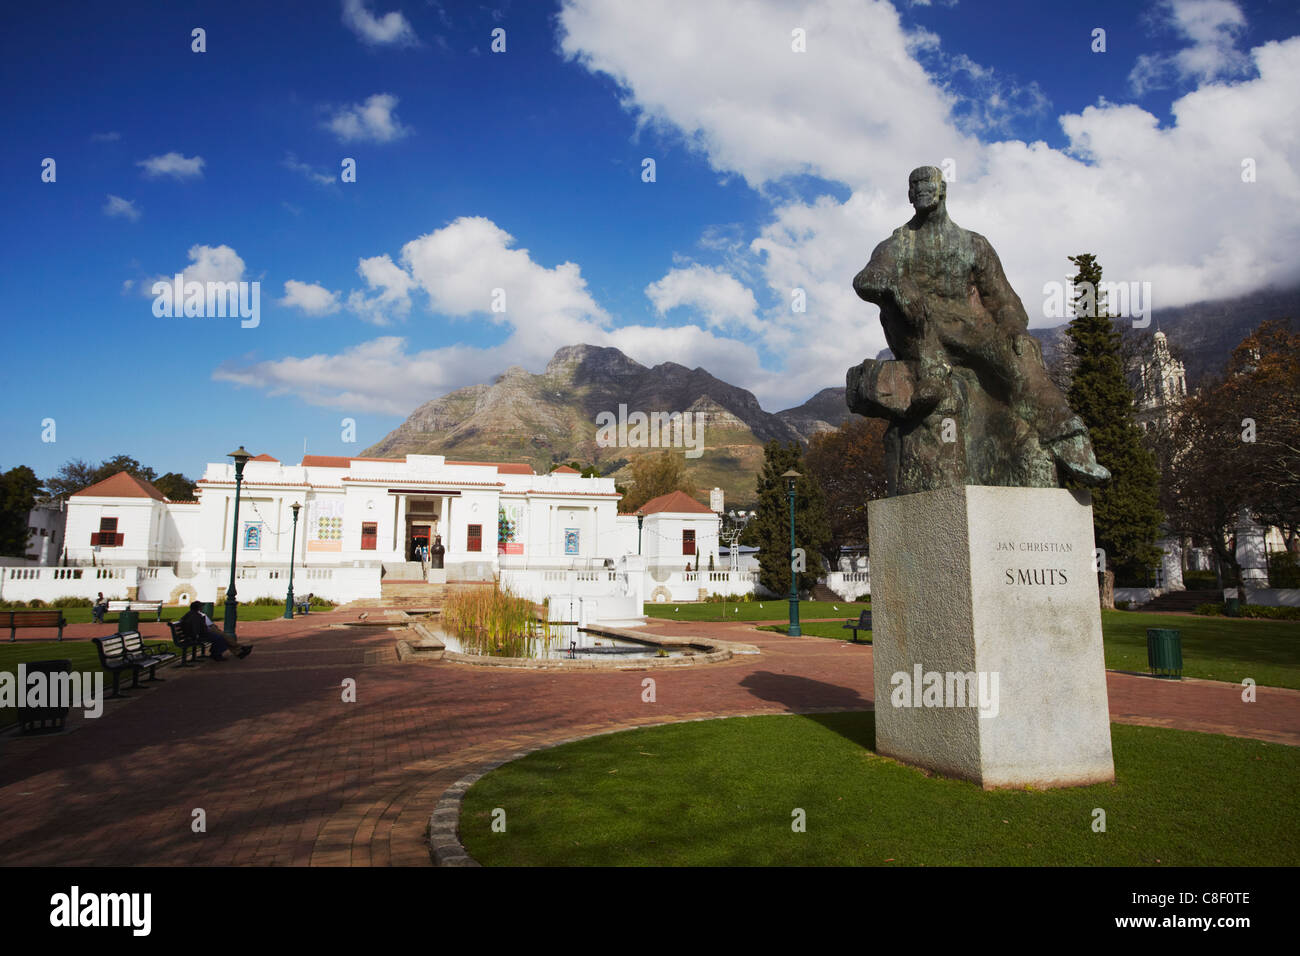 Jan Smuts statue in front of National Gallery, Company's Gardens, City Bowl, Cape Town, Western Cape, South AfricaStock Photo